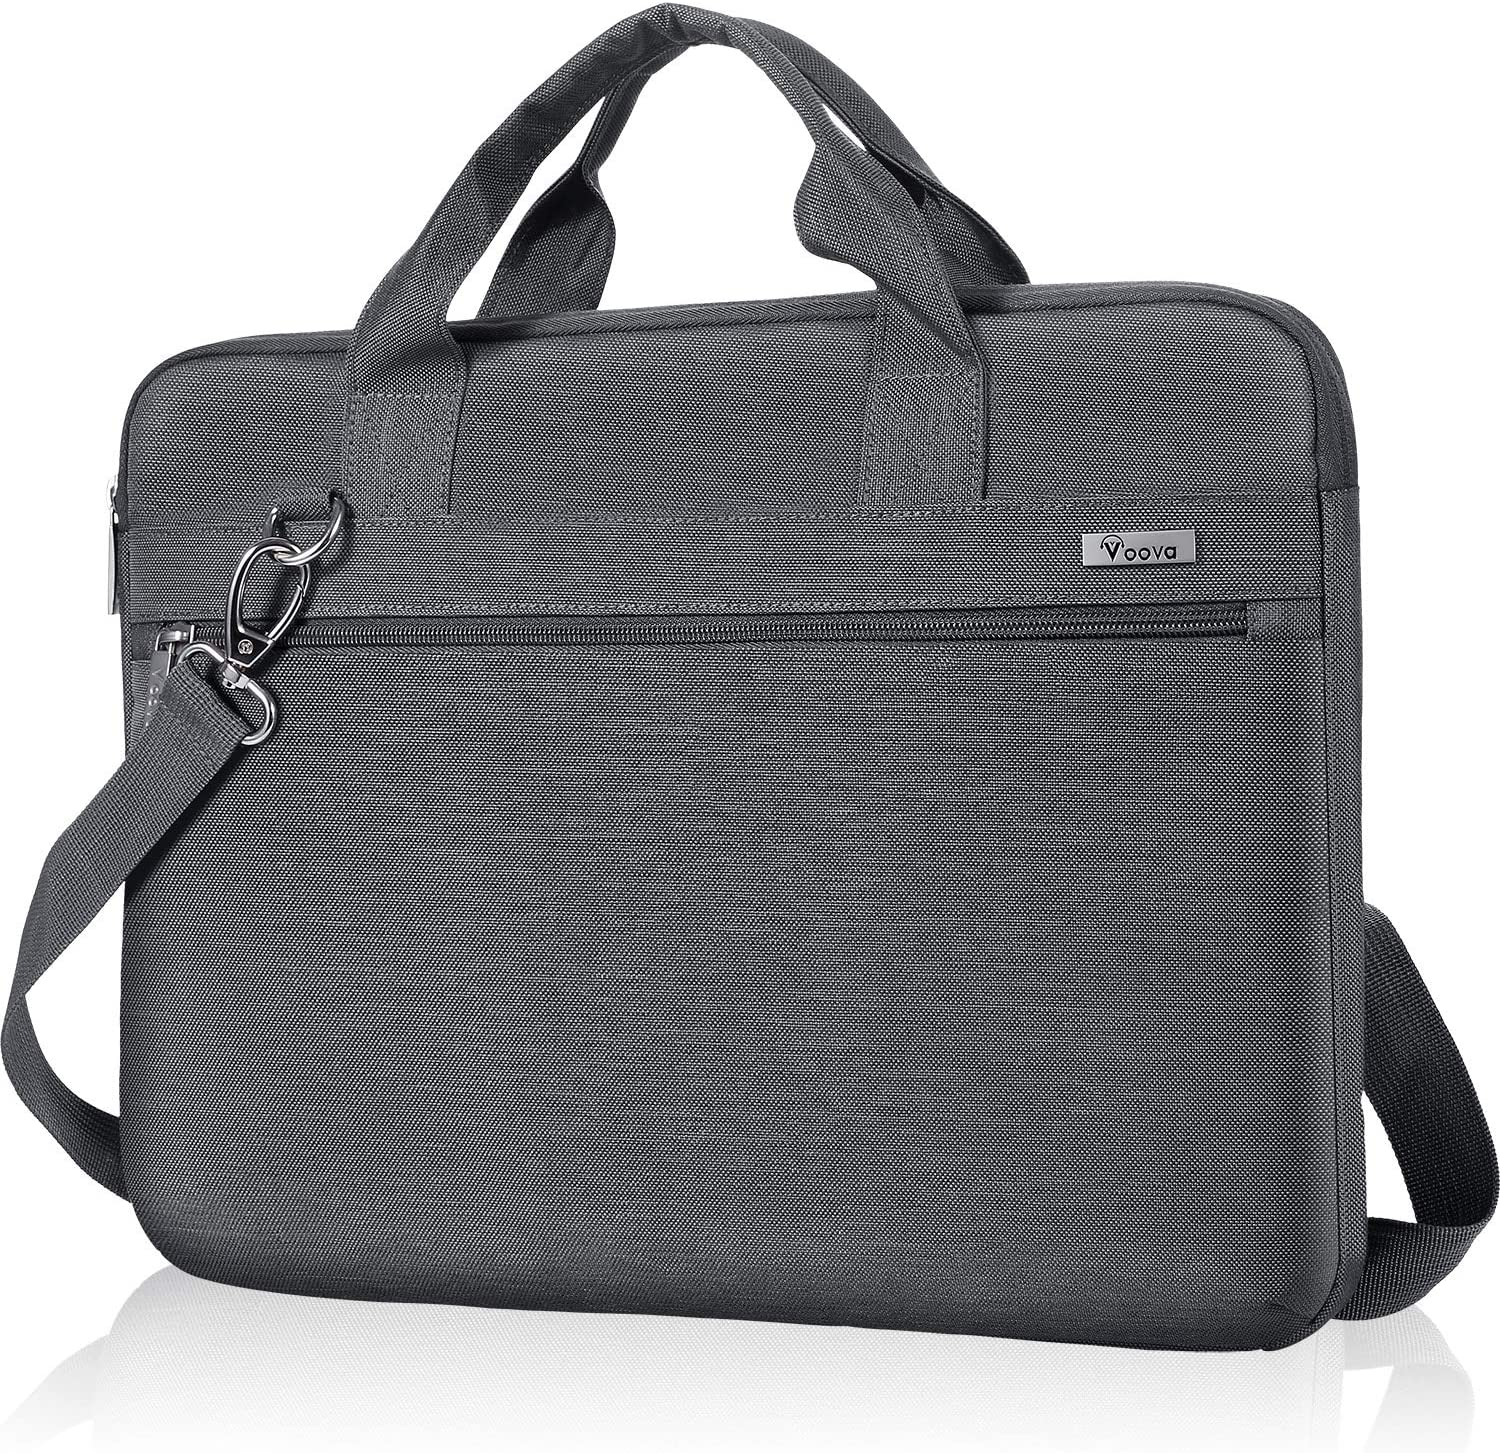 Voova 13 13.3 Inch Laptop Sleeve Case Bag Compatible with Macbook Air/Pro 13, 13.5 Surface Laptop/Book 4 3 2, Hp Dell Xps 13 Chromebook, Upgrade Protective Computer Carrying Briefcase with Strap, Grey